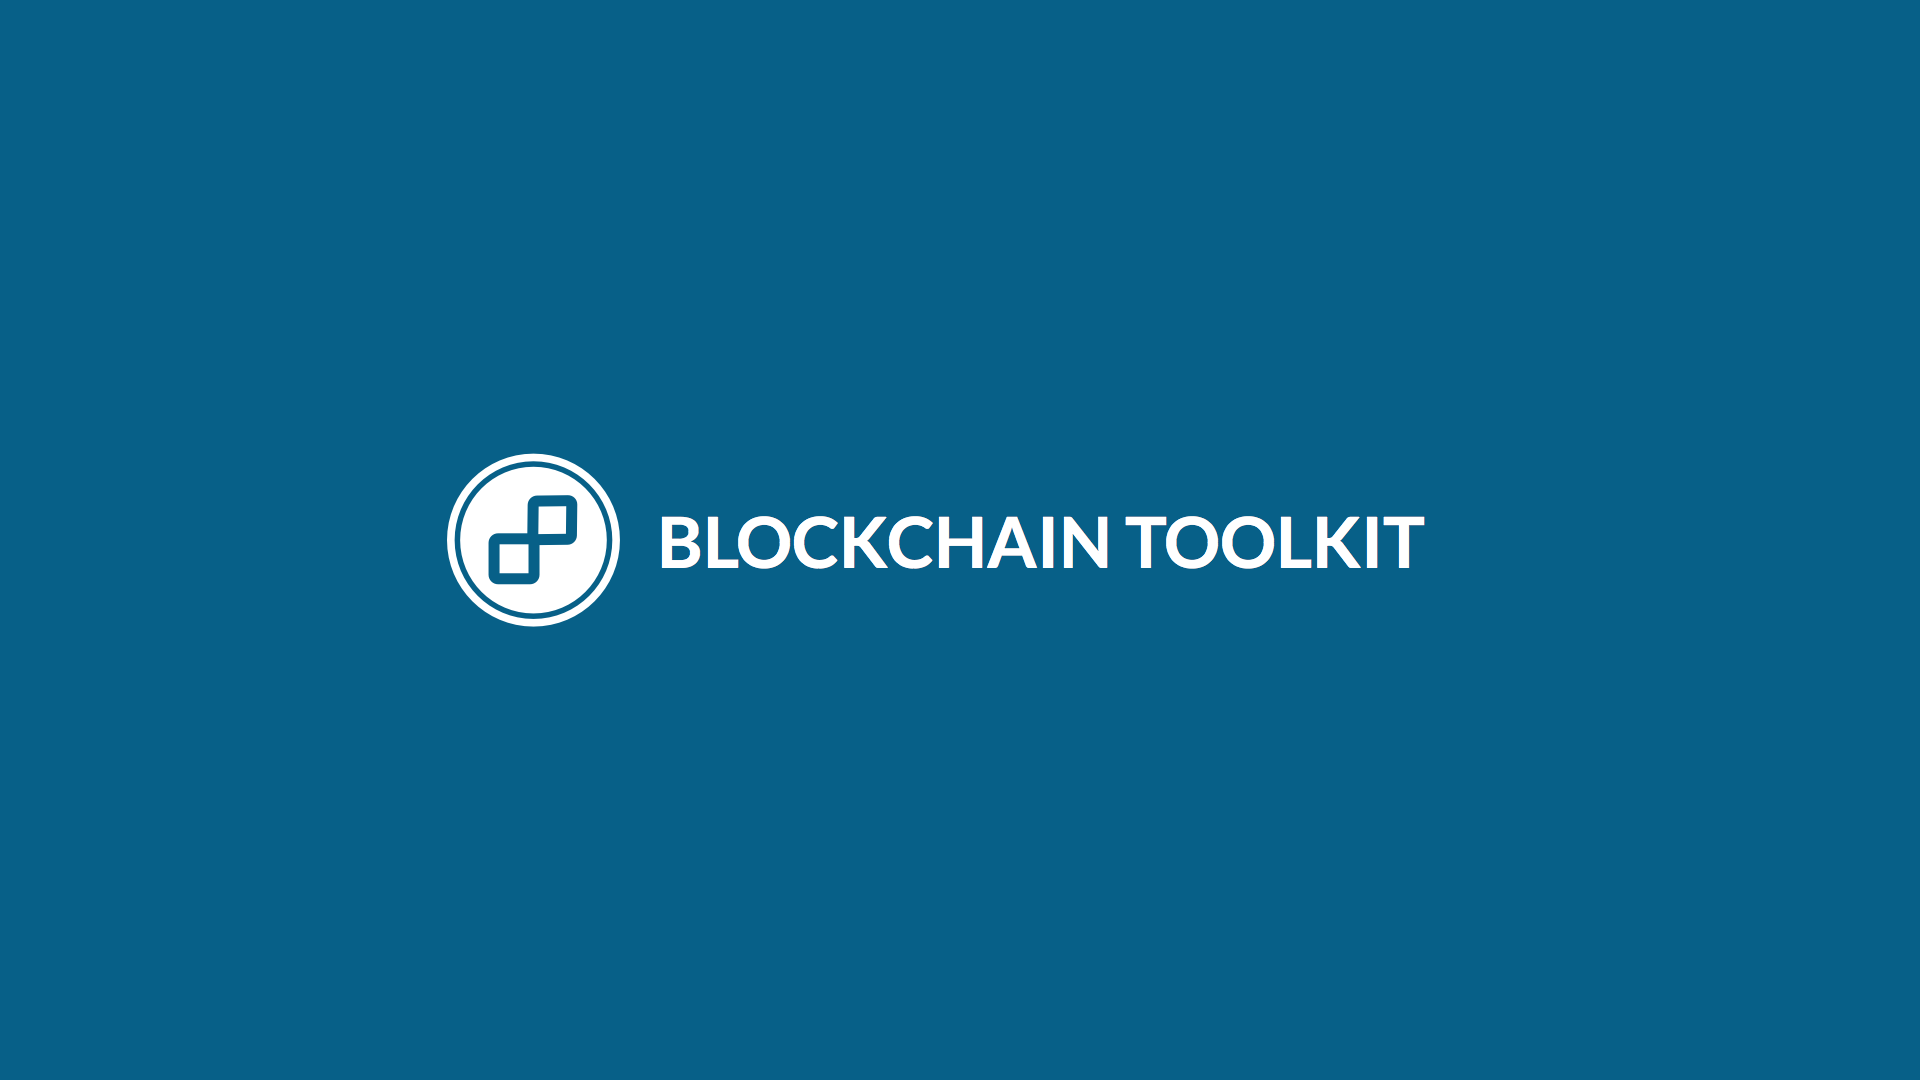 Blockchain Toolkit